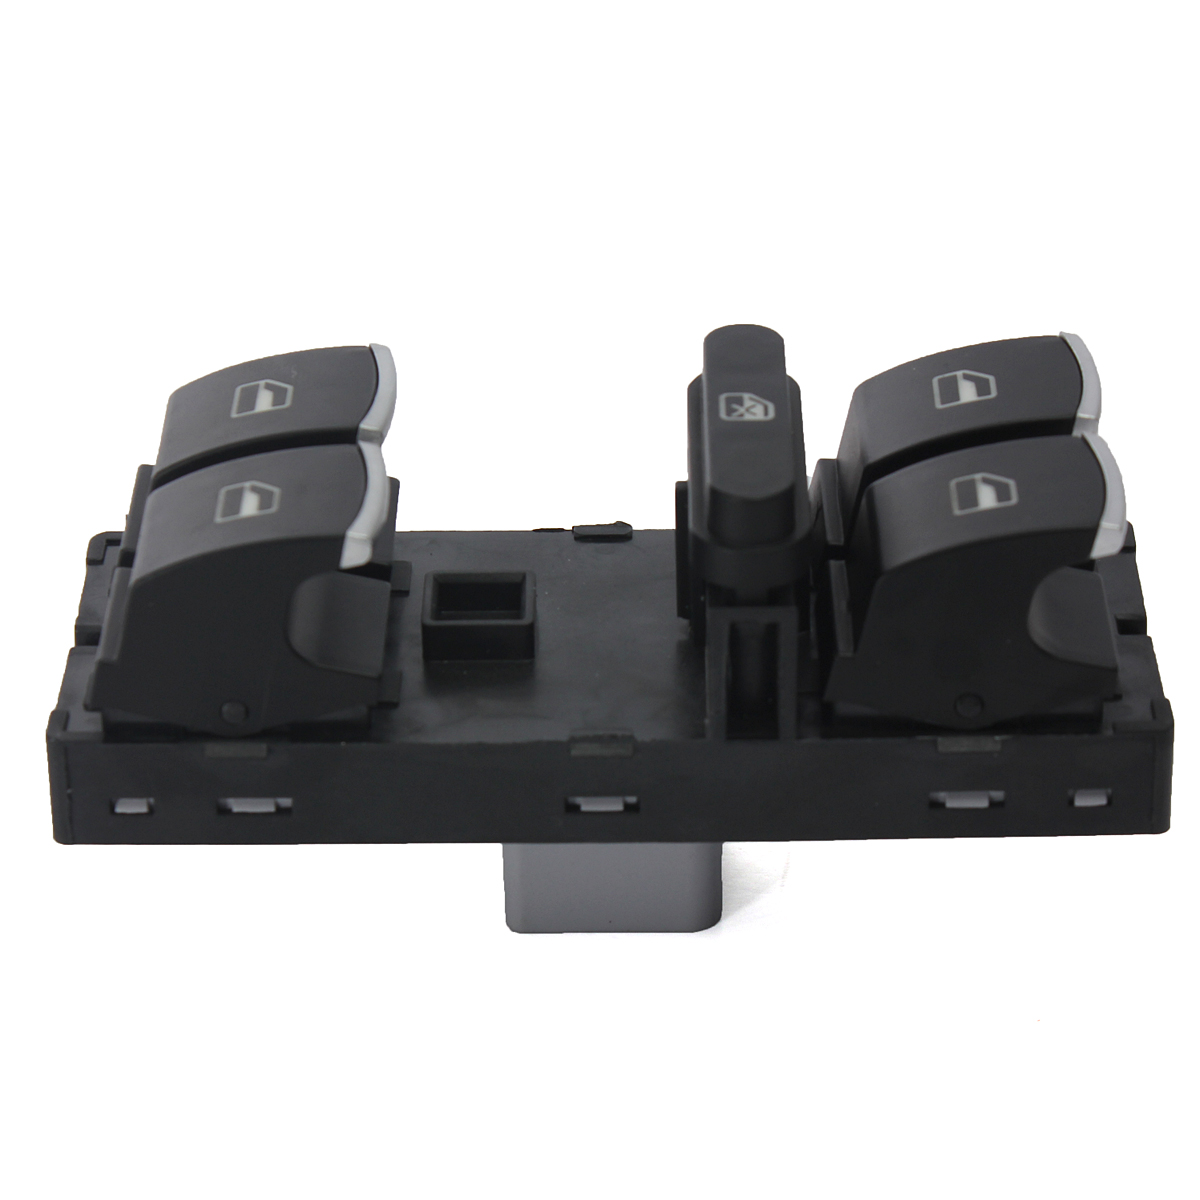 Black Electric Power Window Master Switch for VW MK5 MK6 Passat